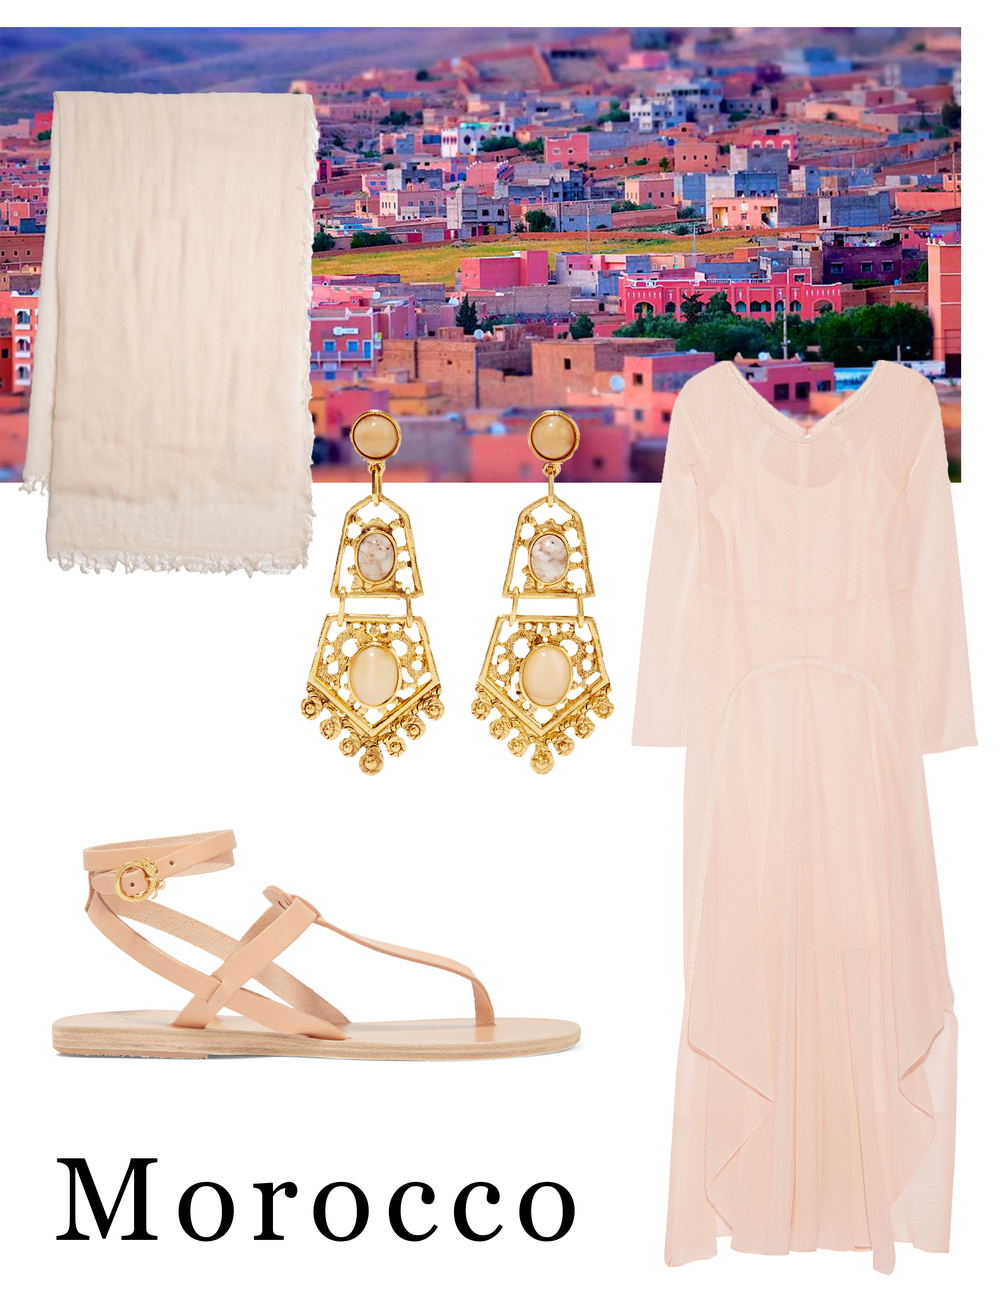 Packing inspiration: flat sandals (Ancient Greek Sandals); a scarf for covering hair where necessary (Rag & Bone); earrings to dress up day dresses (Ben-Amun); a floor-length modest yet chic dress (Maje).